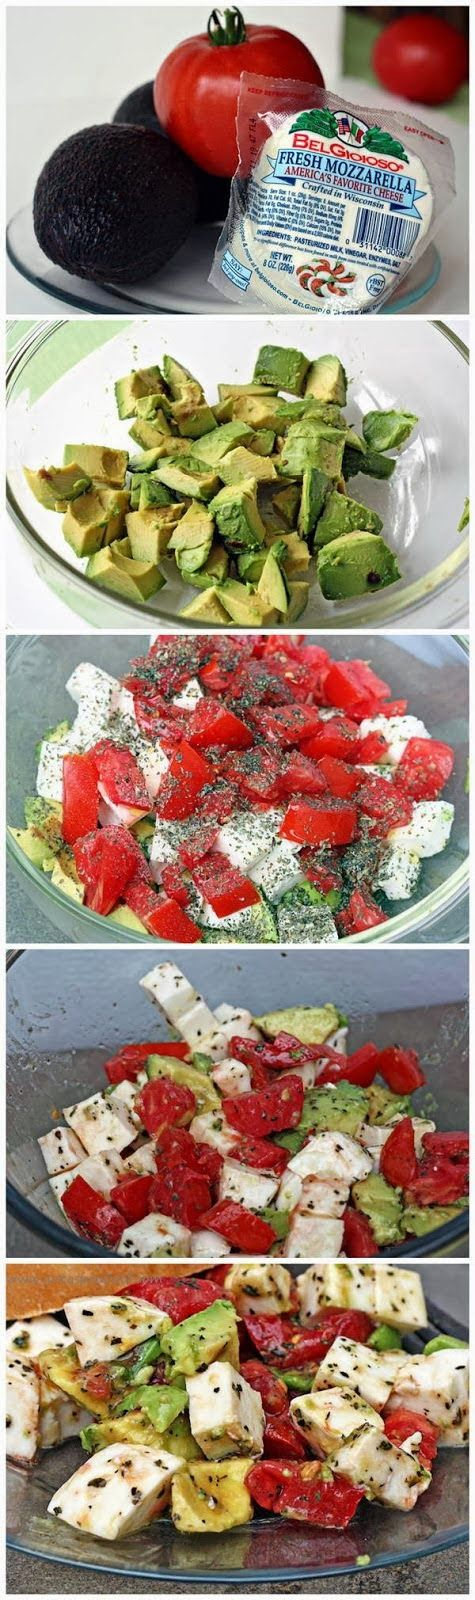 Find me something to eat !: Mozzarella Avocado Tomato Salad